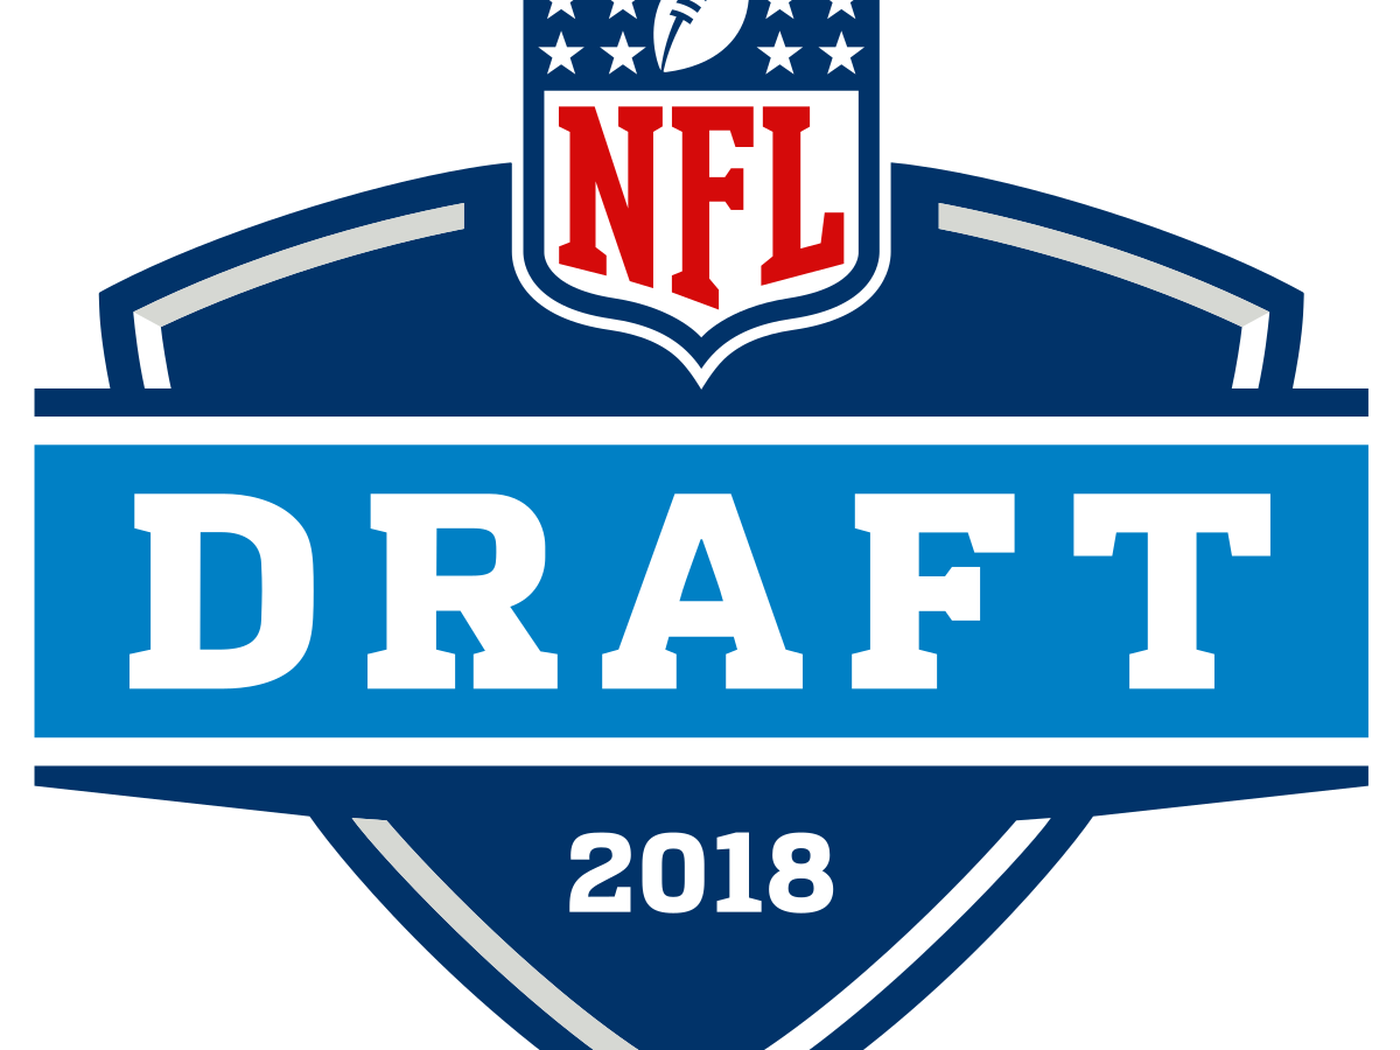 Nfl draft 2018 png. Start time tv schedule